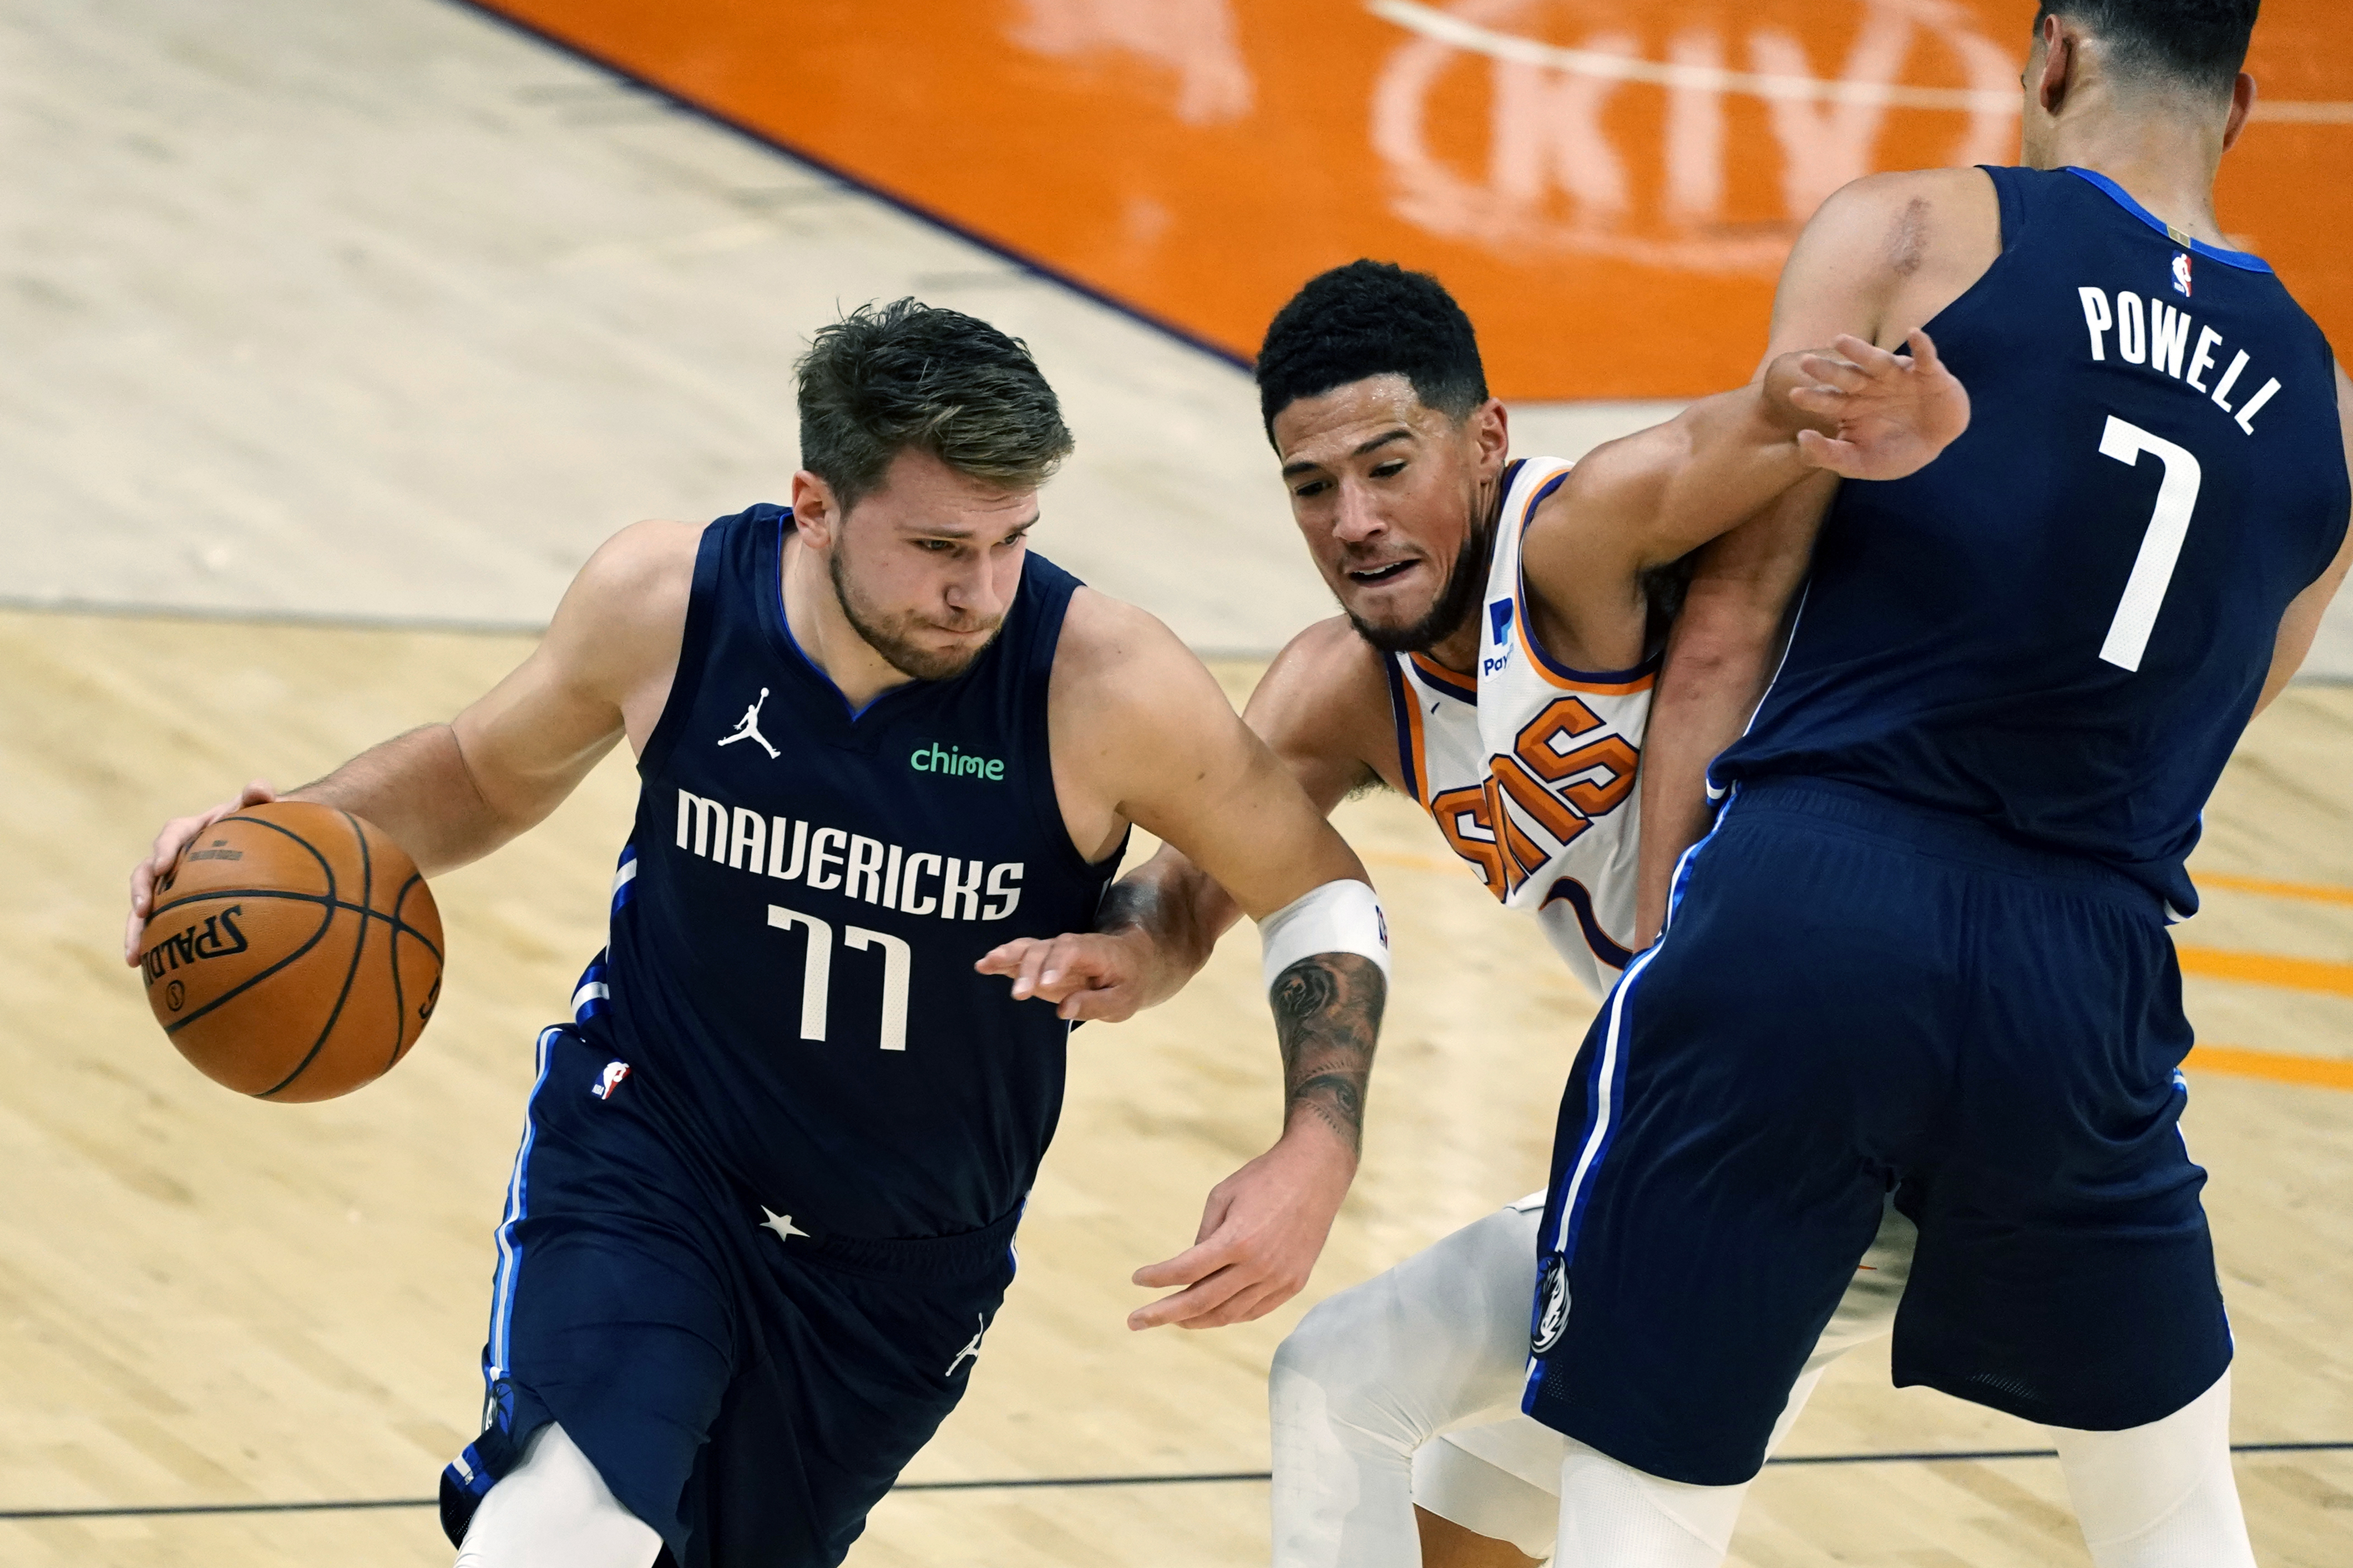 Dallas Mavericks guard Luka Doncic (77) uses the pick by Dwight Powell (7) to drive past Phoenix Suns guard Devin Booker during the first half of an NBA basketball game Wednesday, Dec. 23, 2020, in Phoenix.